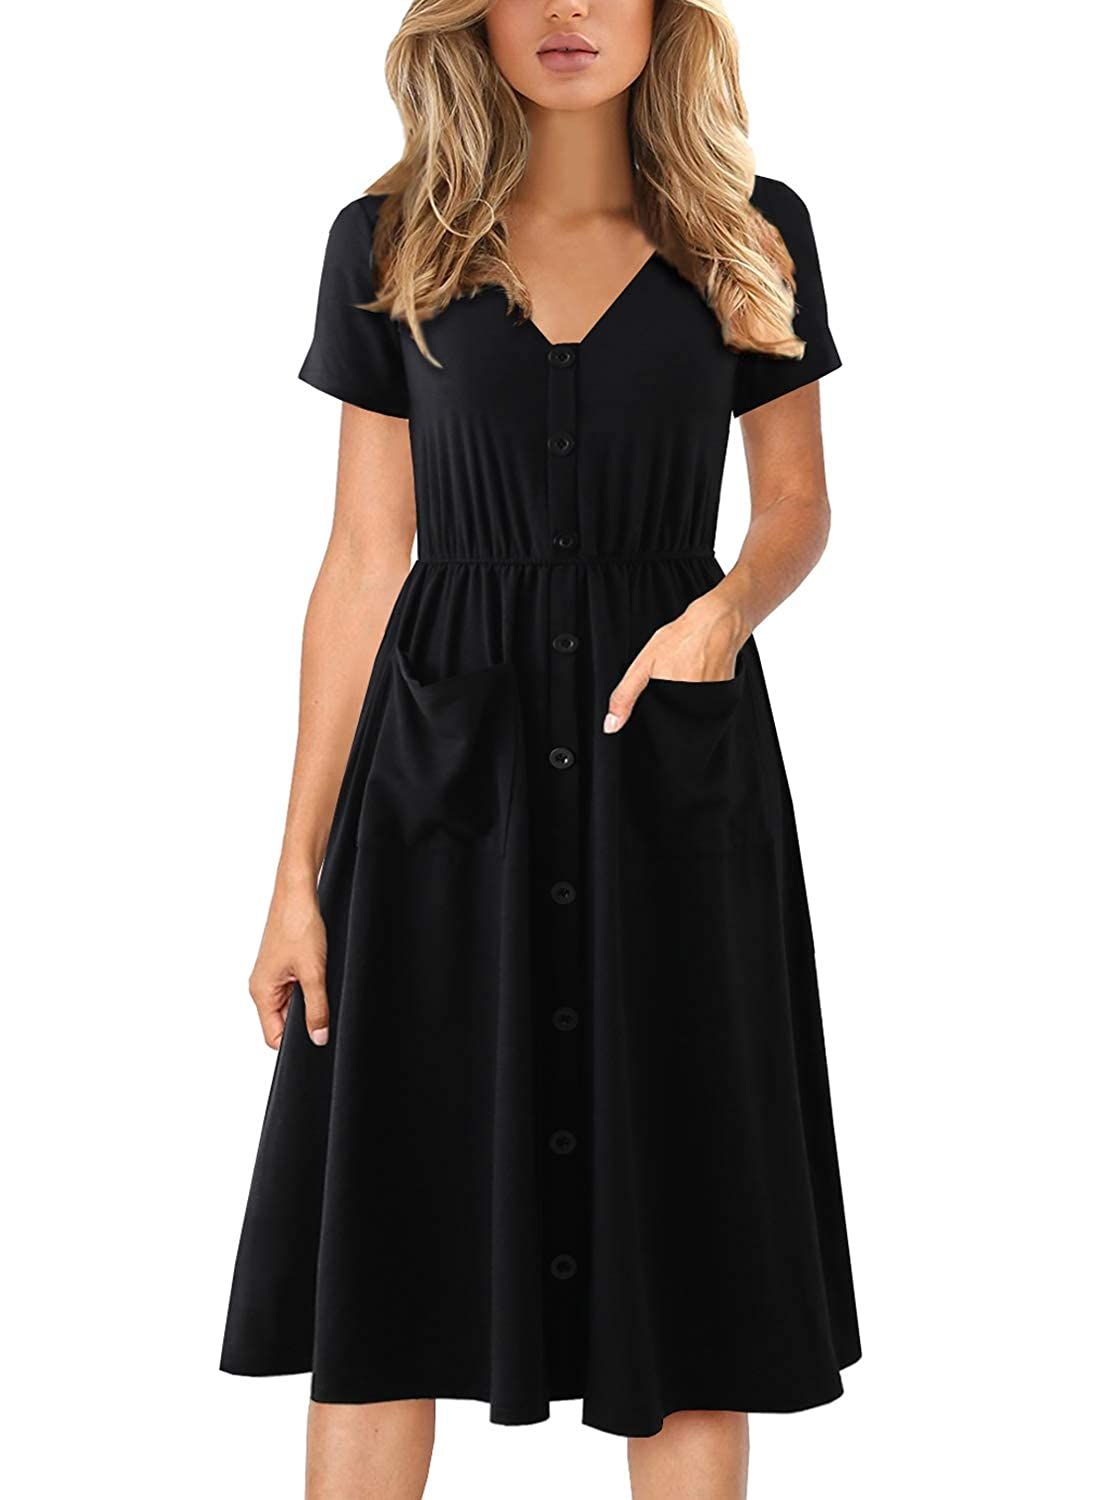 800d20d4fcd6 COMFORTABLE SOFT MATERIAL : Polyester + Cotton, Women's midi dresses is  comfy breathable material and super nice quality. Very soft to touch and  easy to ...